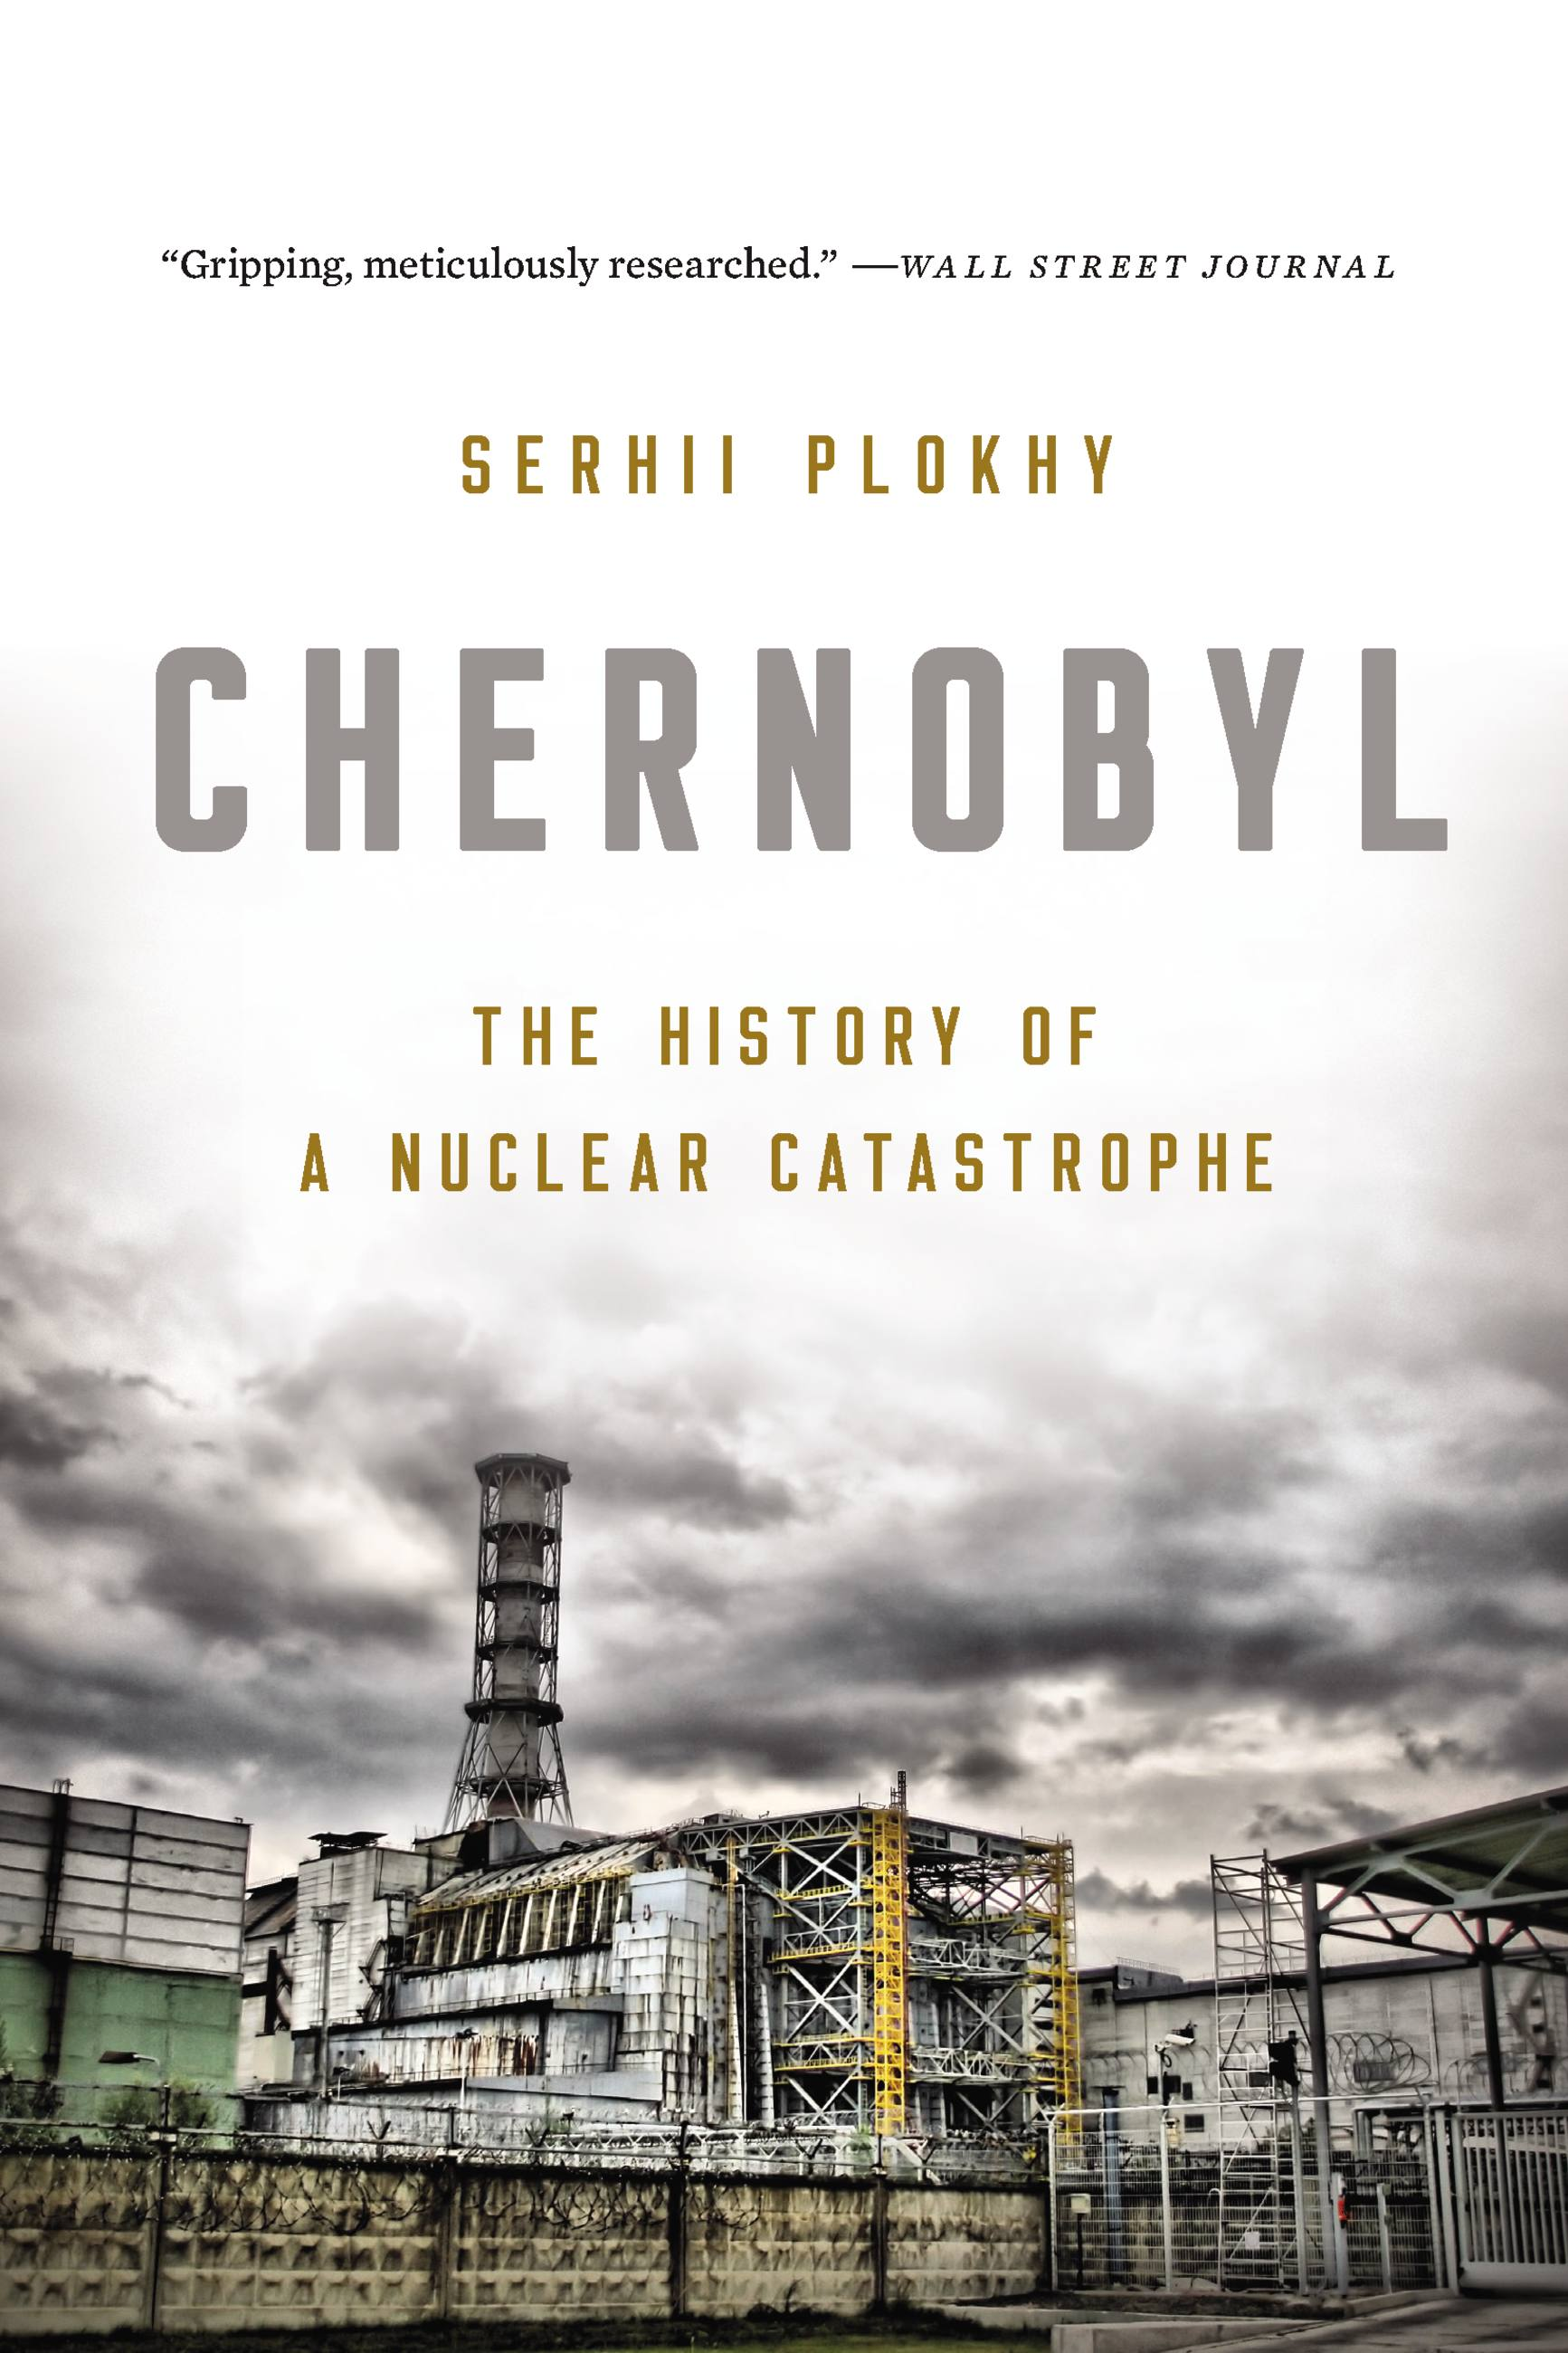 Chernobyl The History of a Nuclear Catastrophe